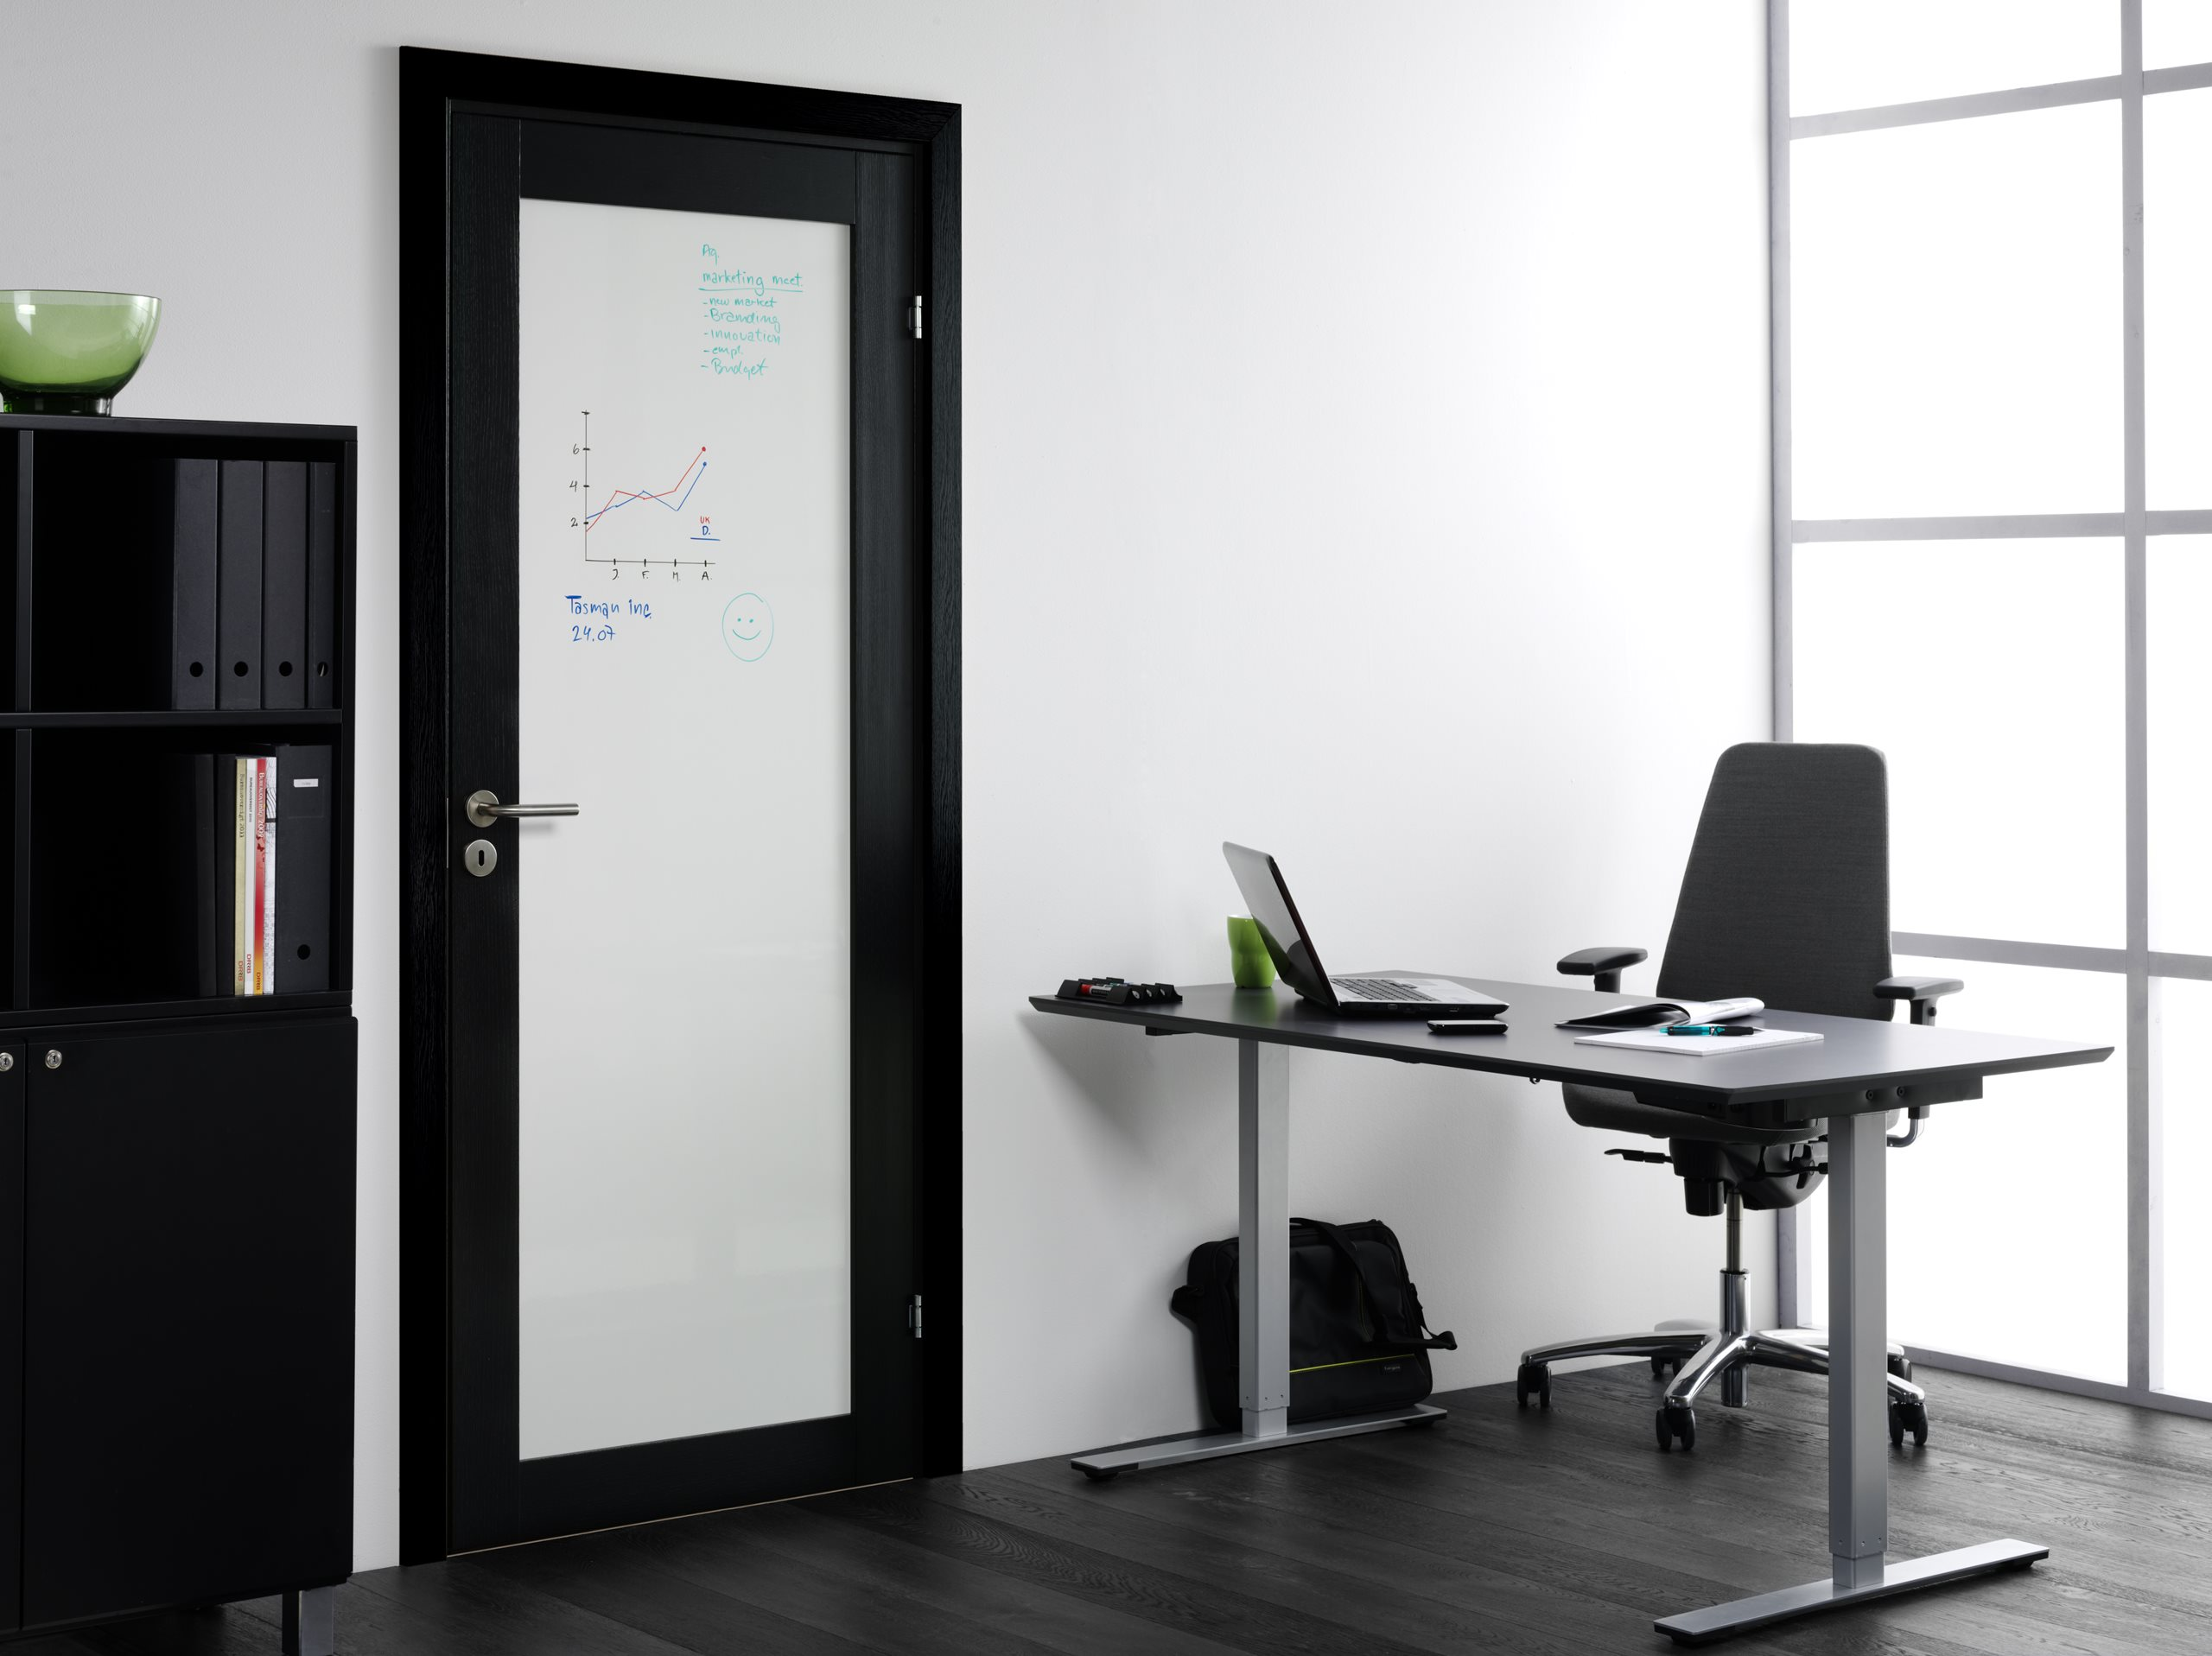 Unique-01L-whiteboard-black-oak-scenery